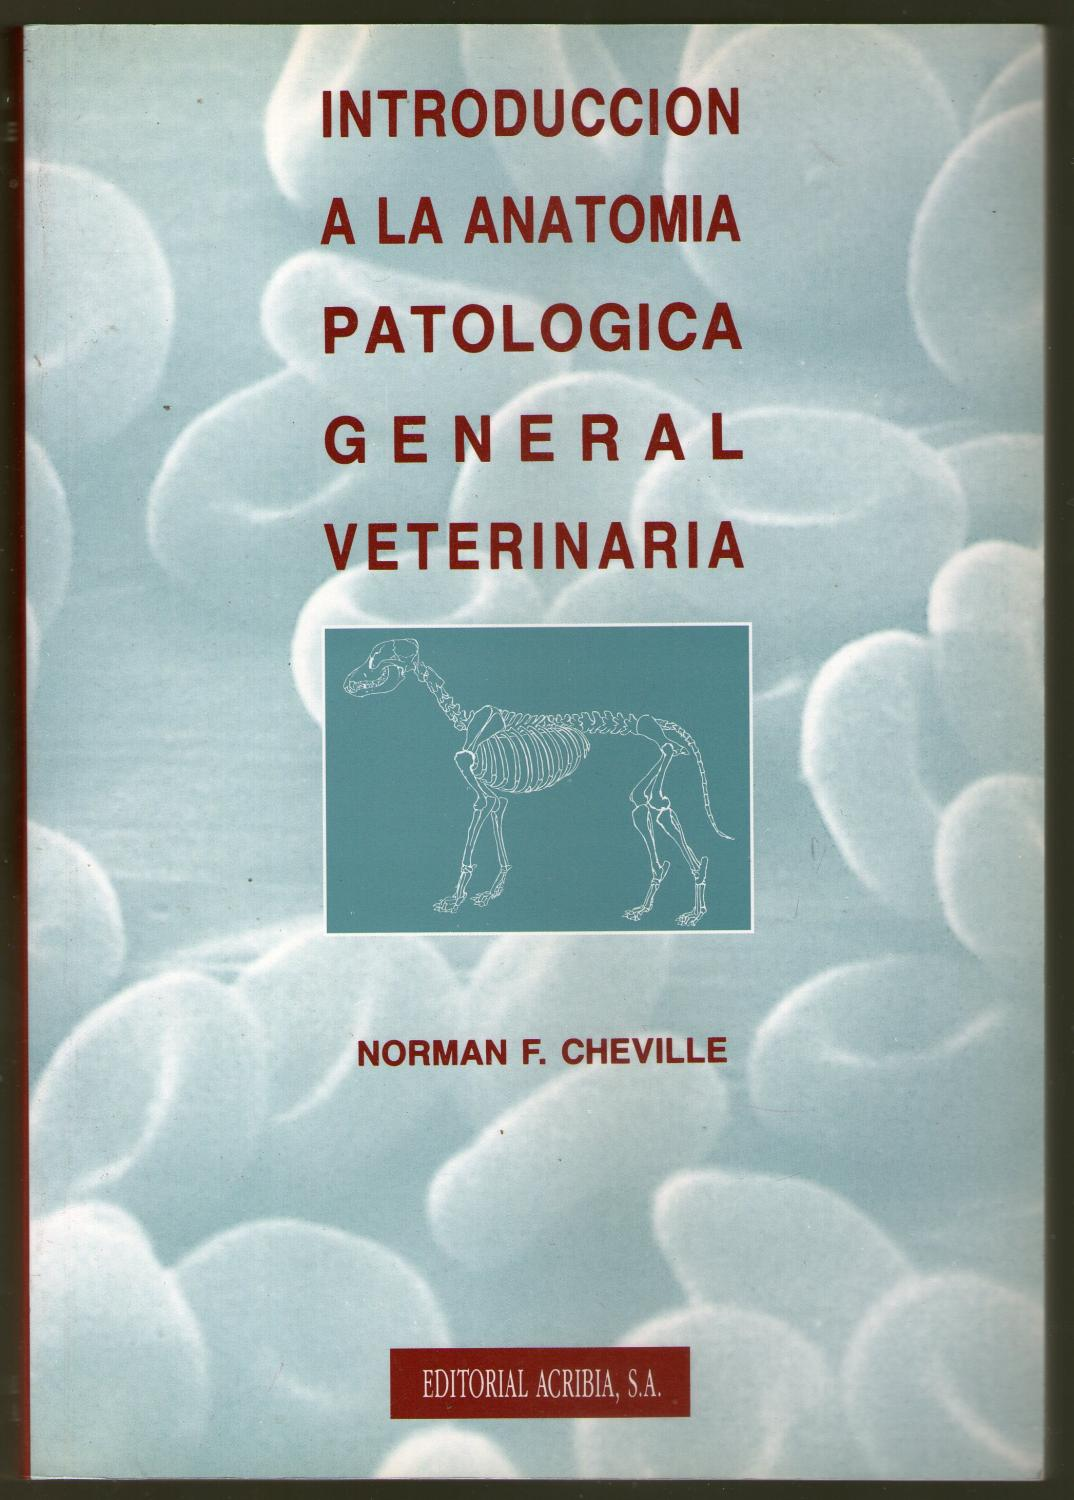 introduccion anatomia patologica general veterinaria de cheville ...